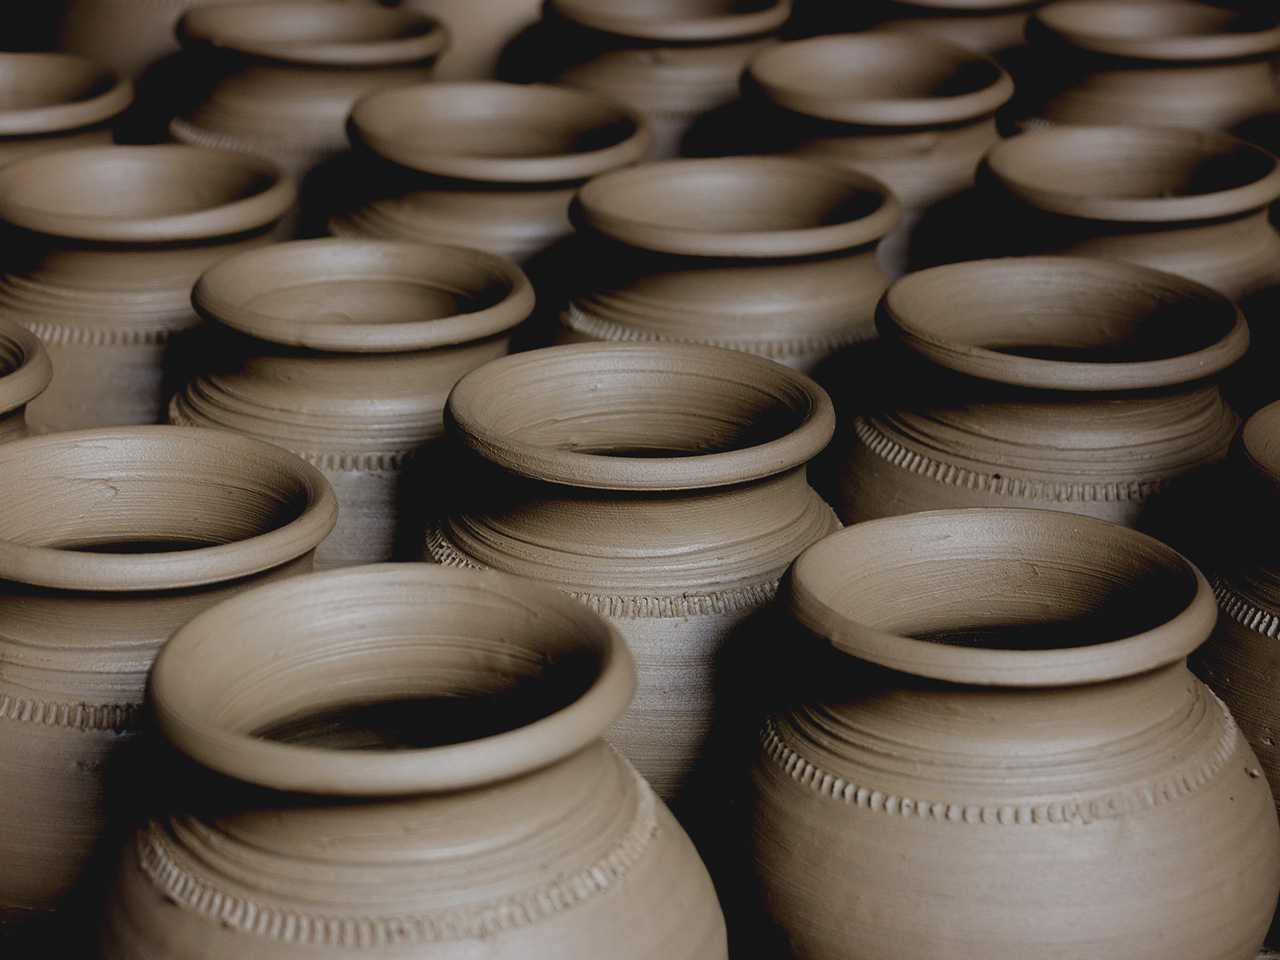 Earthenware Vs Stoneware